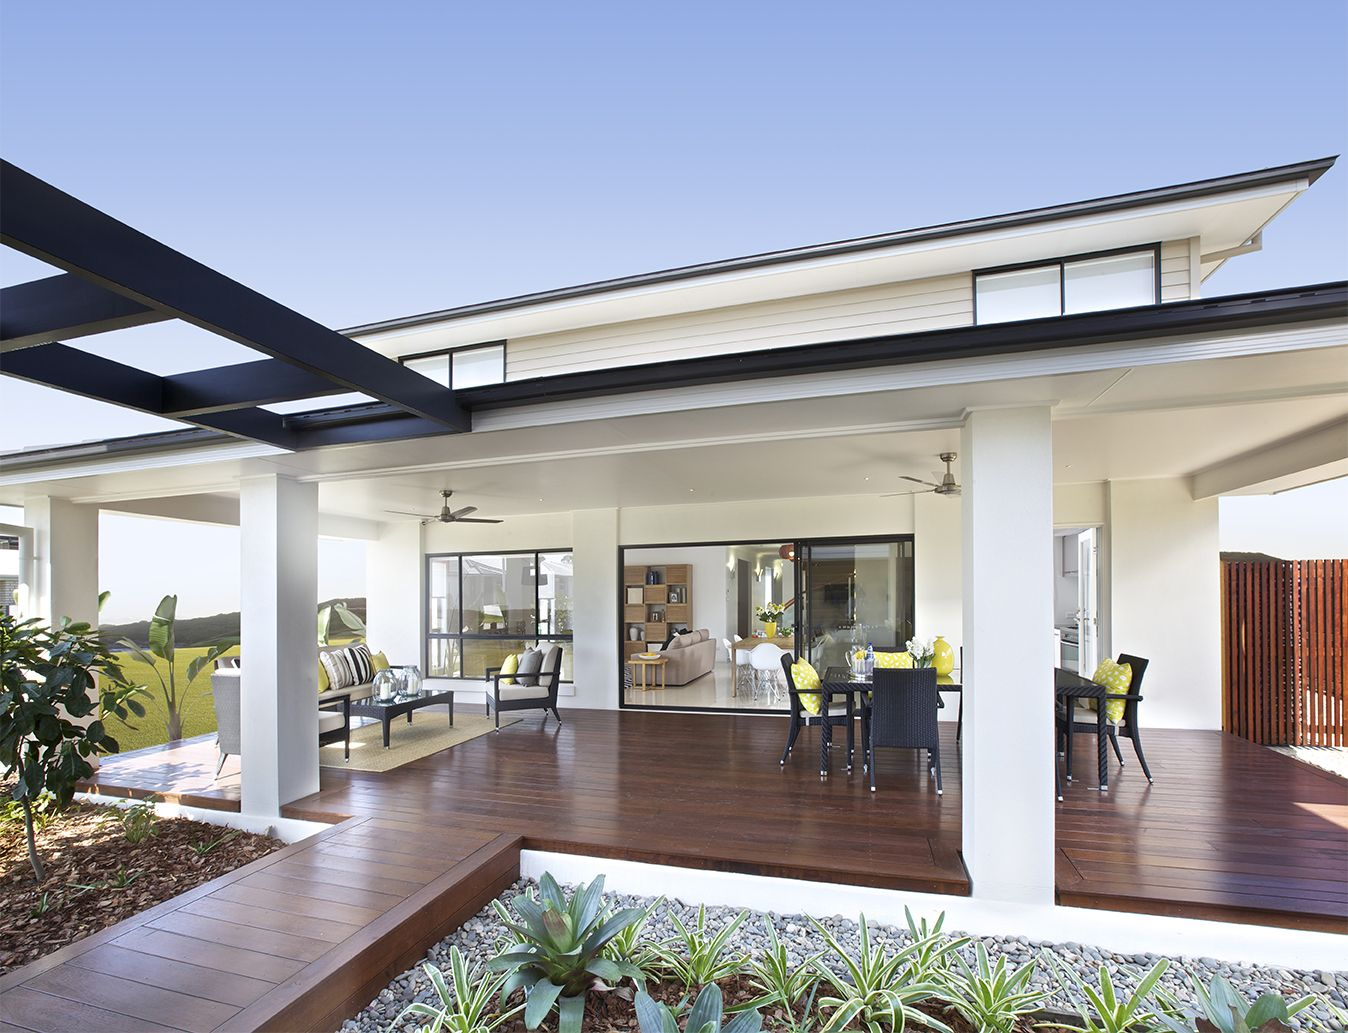 Clarendon Homes. The Madison Series - Grand alfresco | Our ...